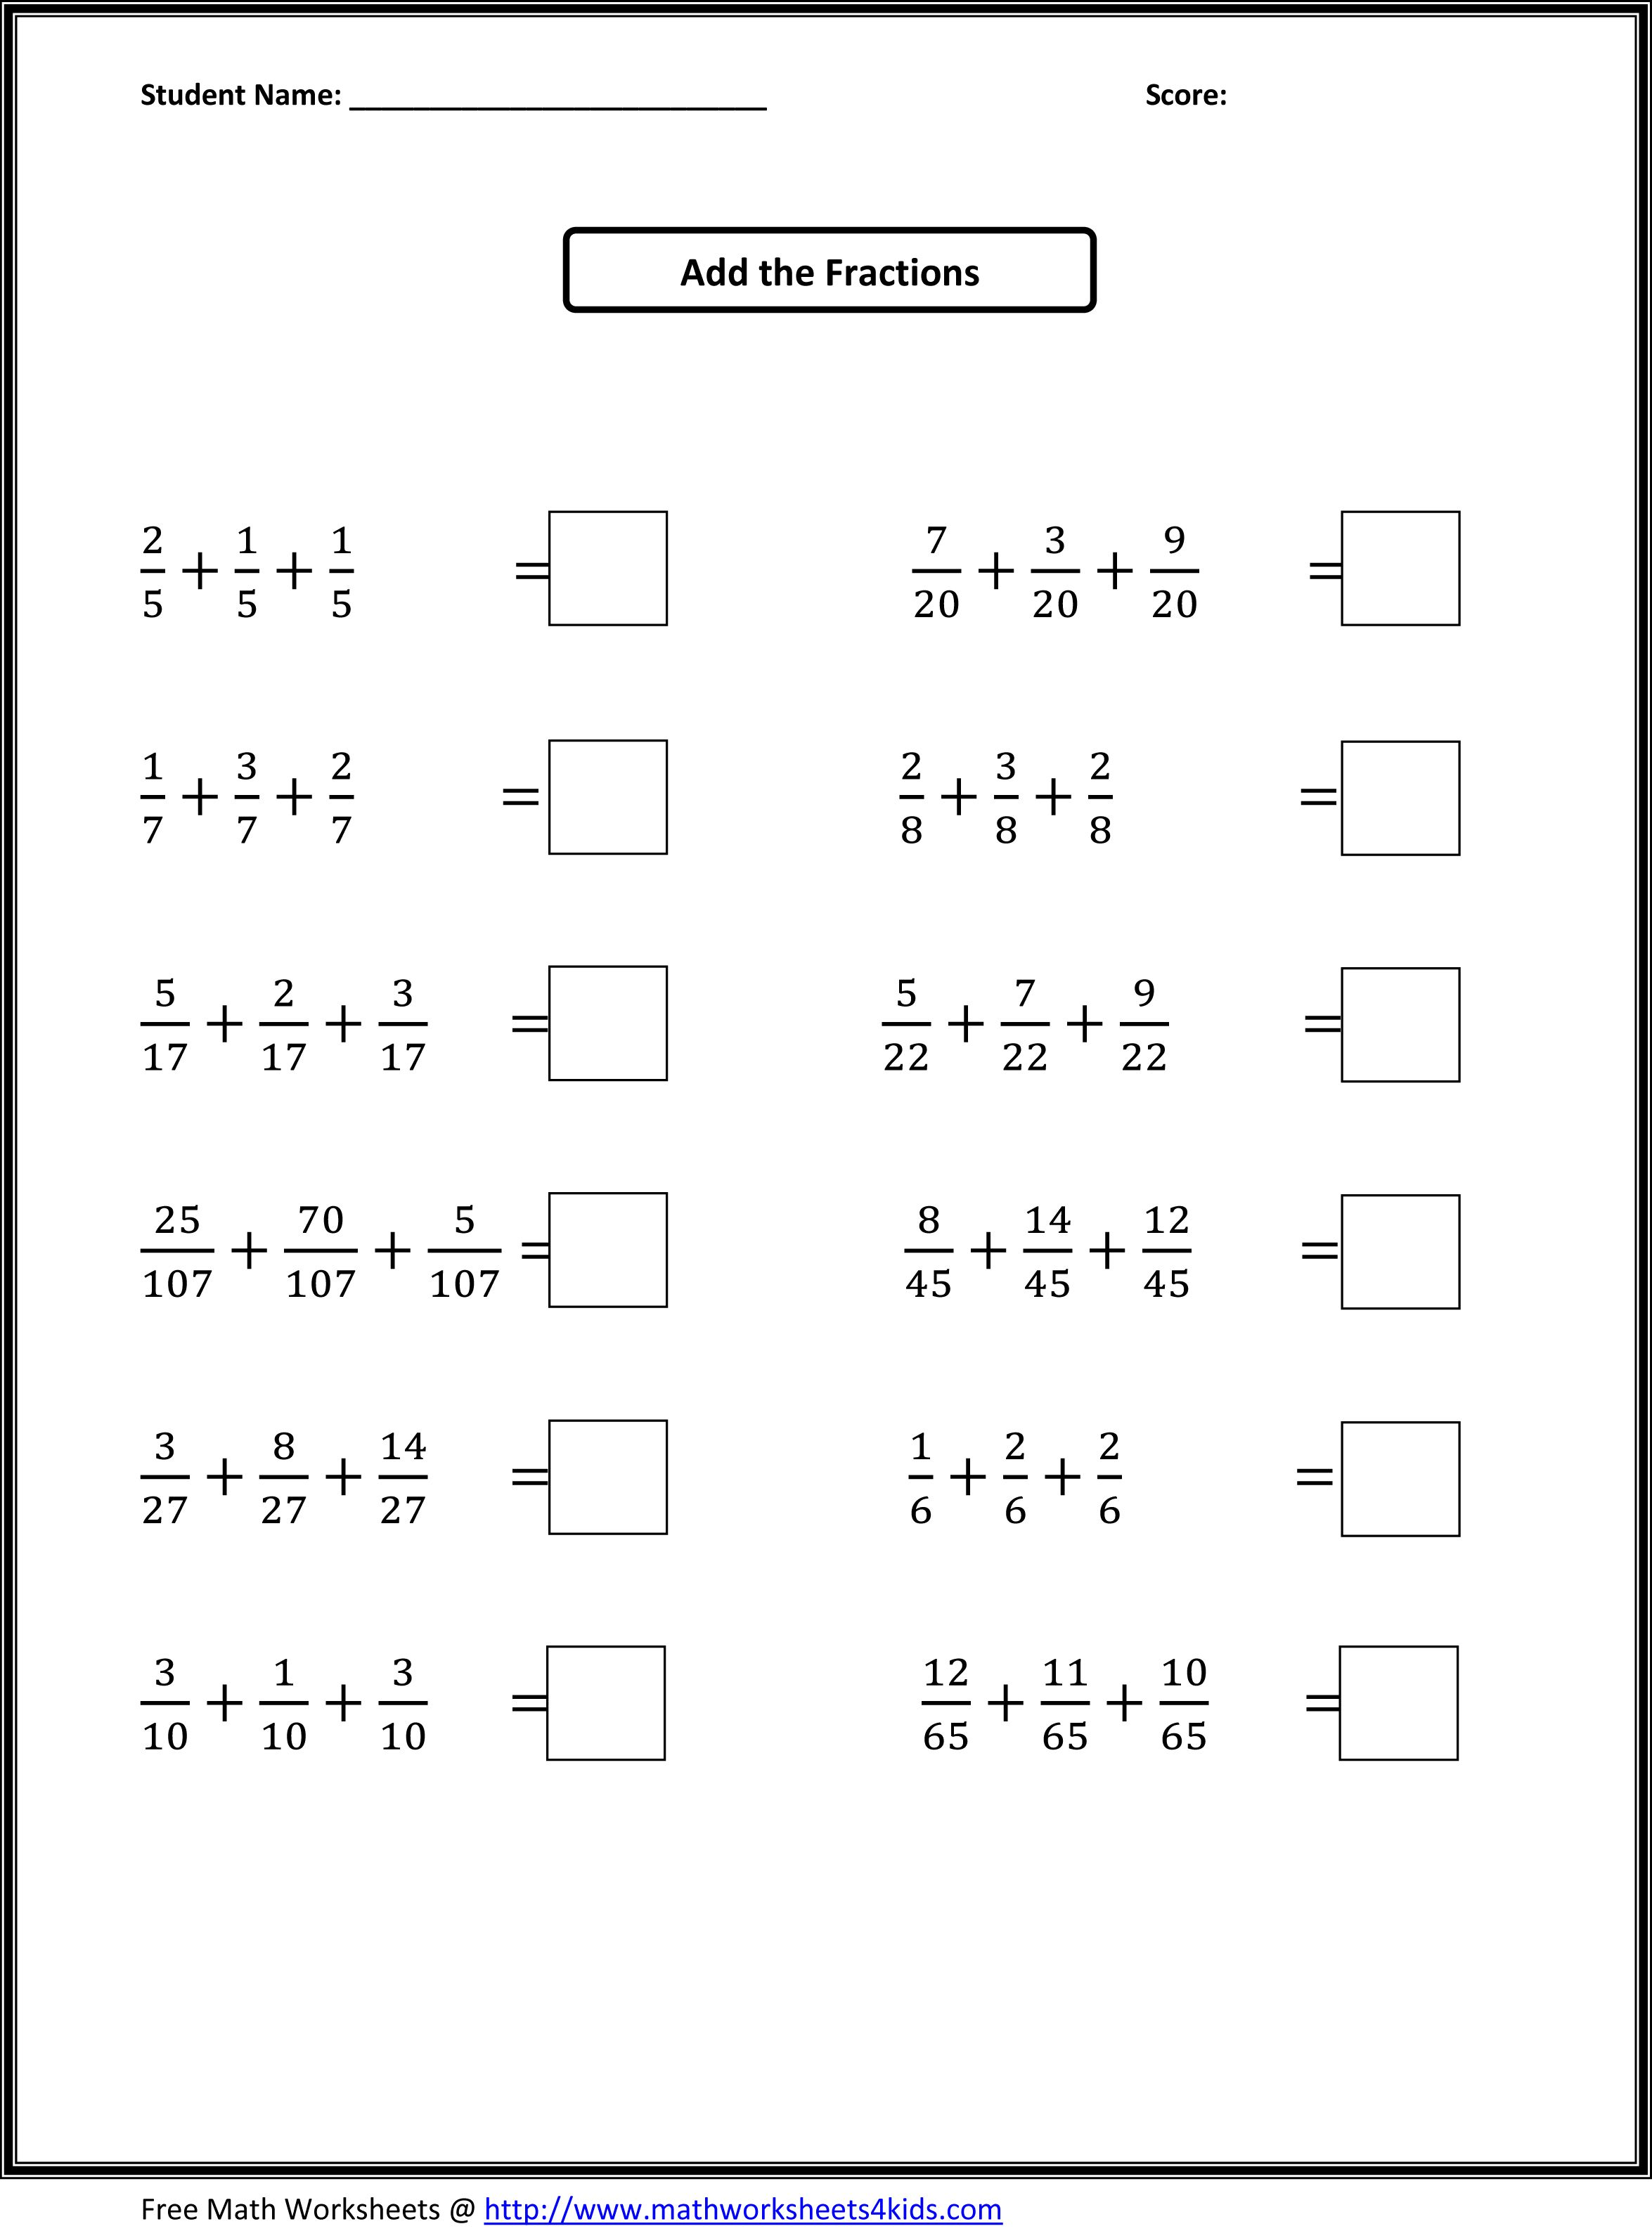 Worksheets Common Core Math 4th Grade Worksheets worksheets for all early ed grades topics of math math